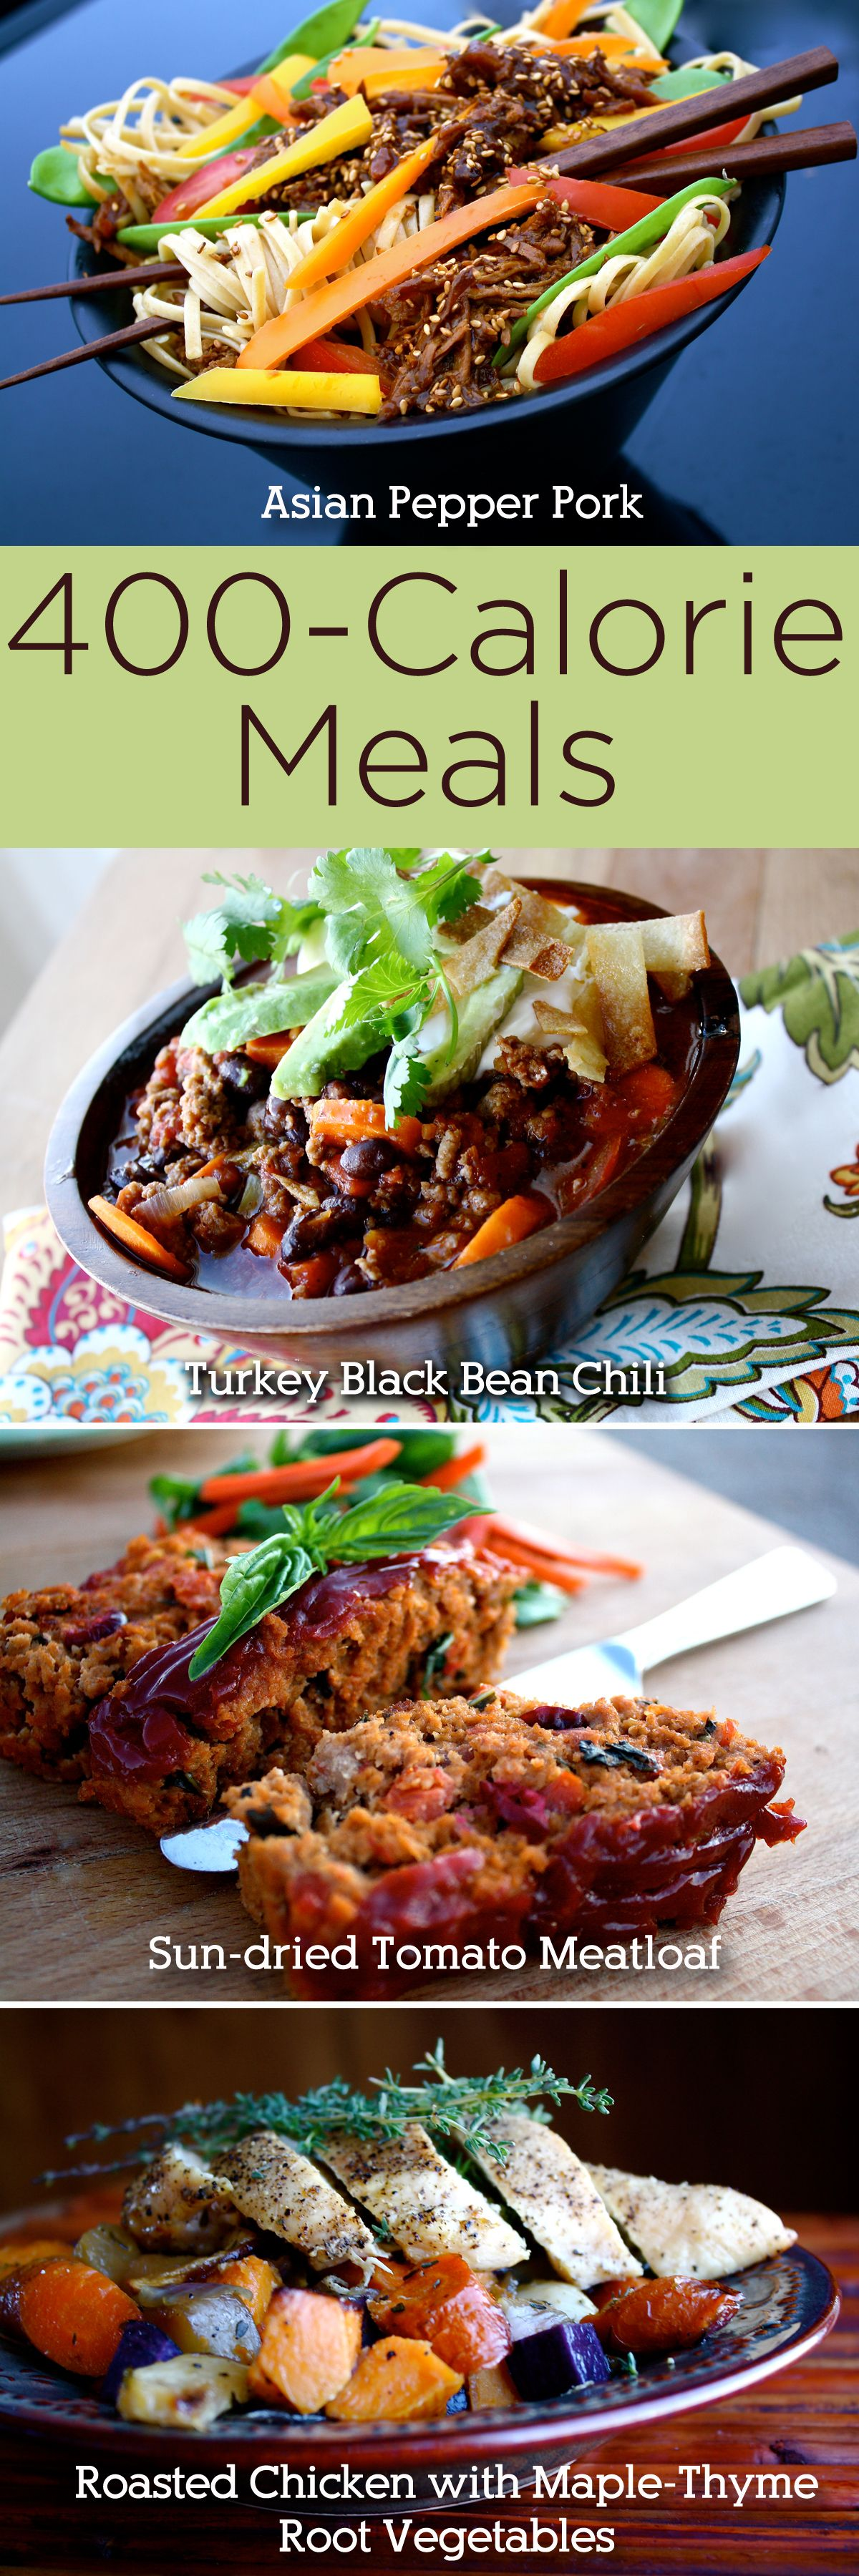 400-Calorie Meals That Actually Taste Good